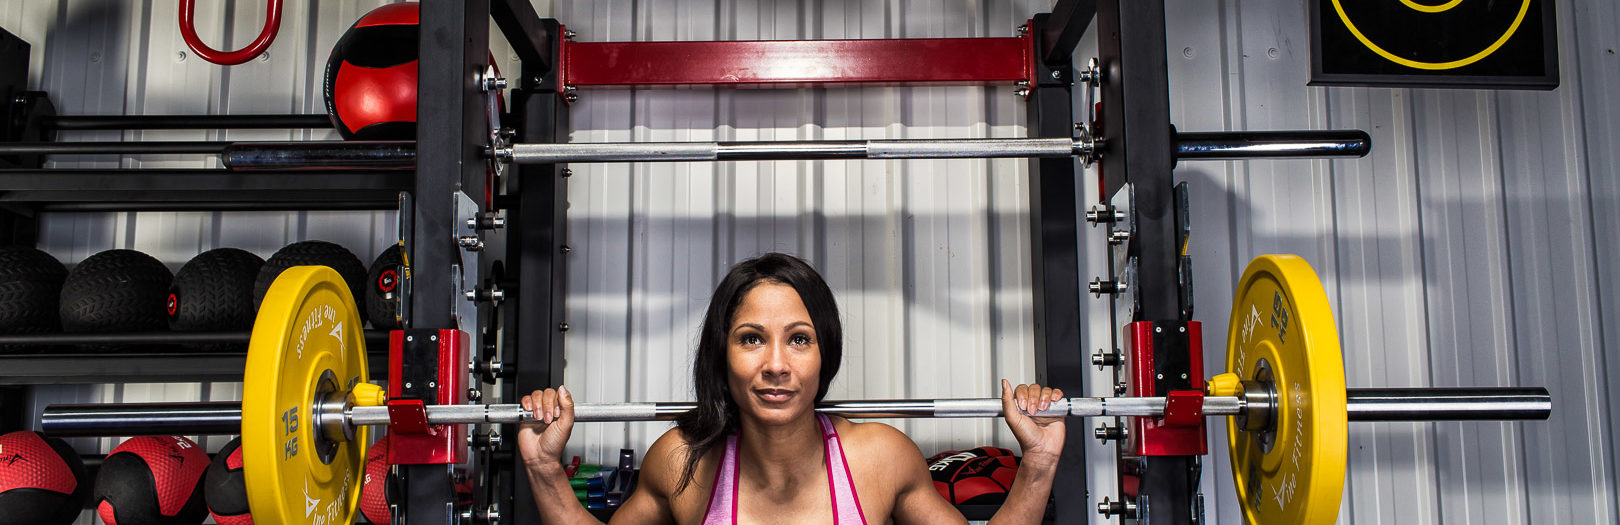 Commercial Fitness Photoshoot for IDASS by Pete Bennett Photography